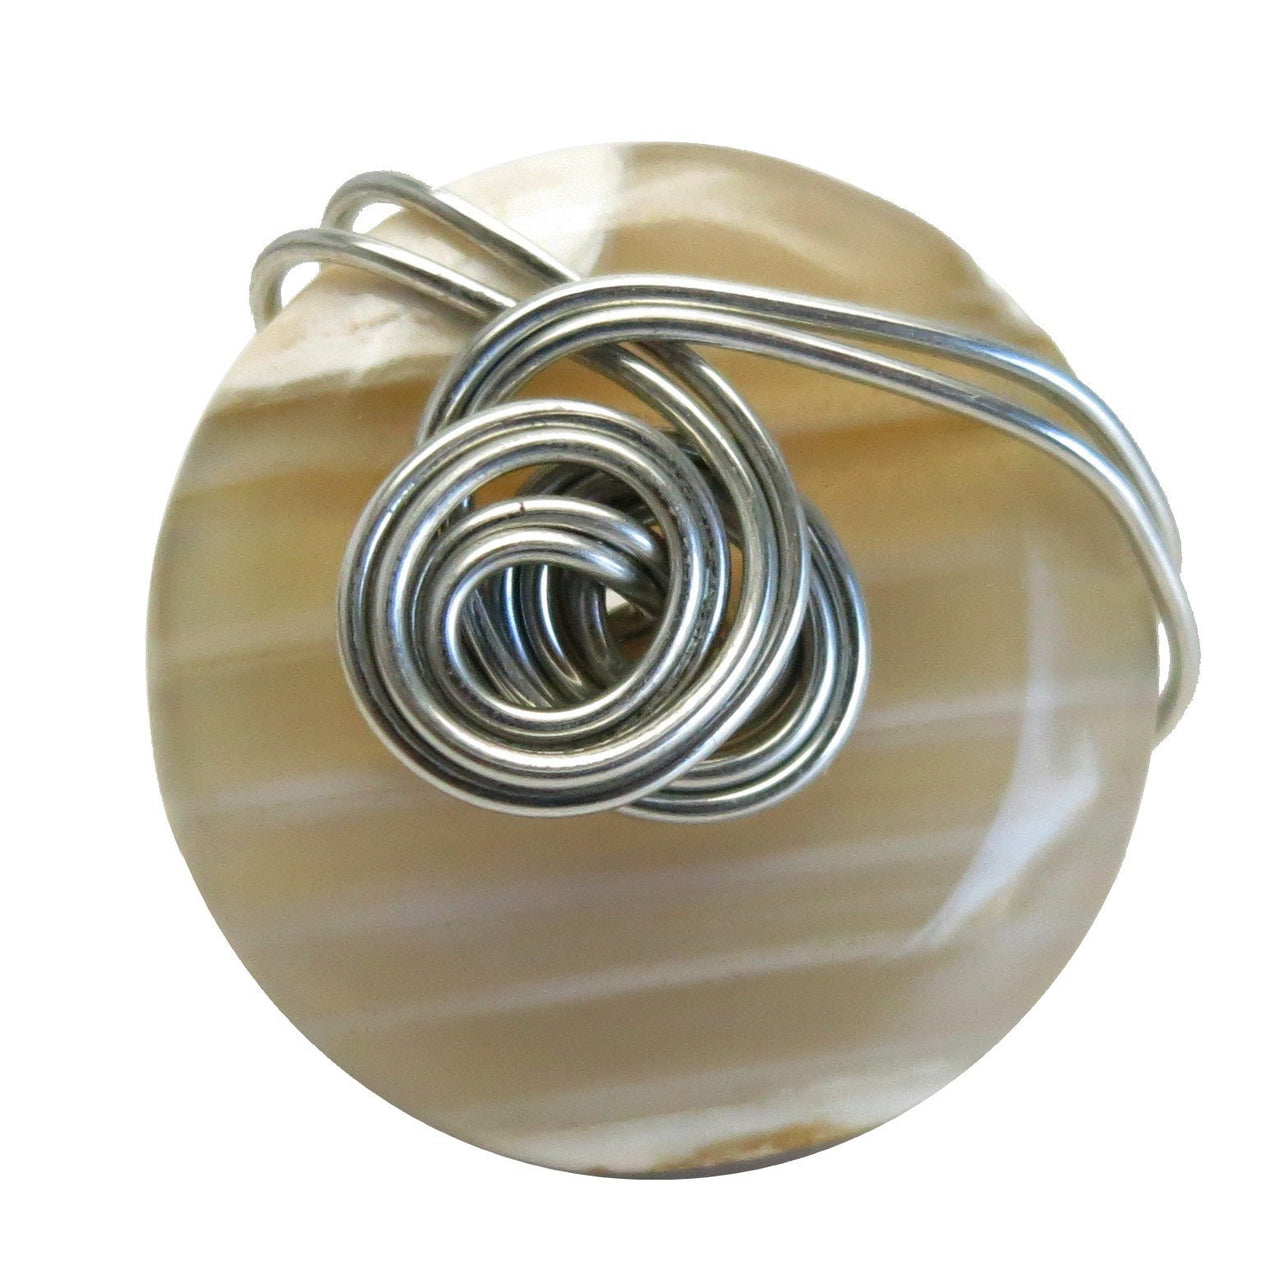 Agate White Ring 7.25 Specialty One-of-Kind Banded Stone Crystal Healing Silver Wire Wrapped Donut S01